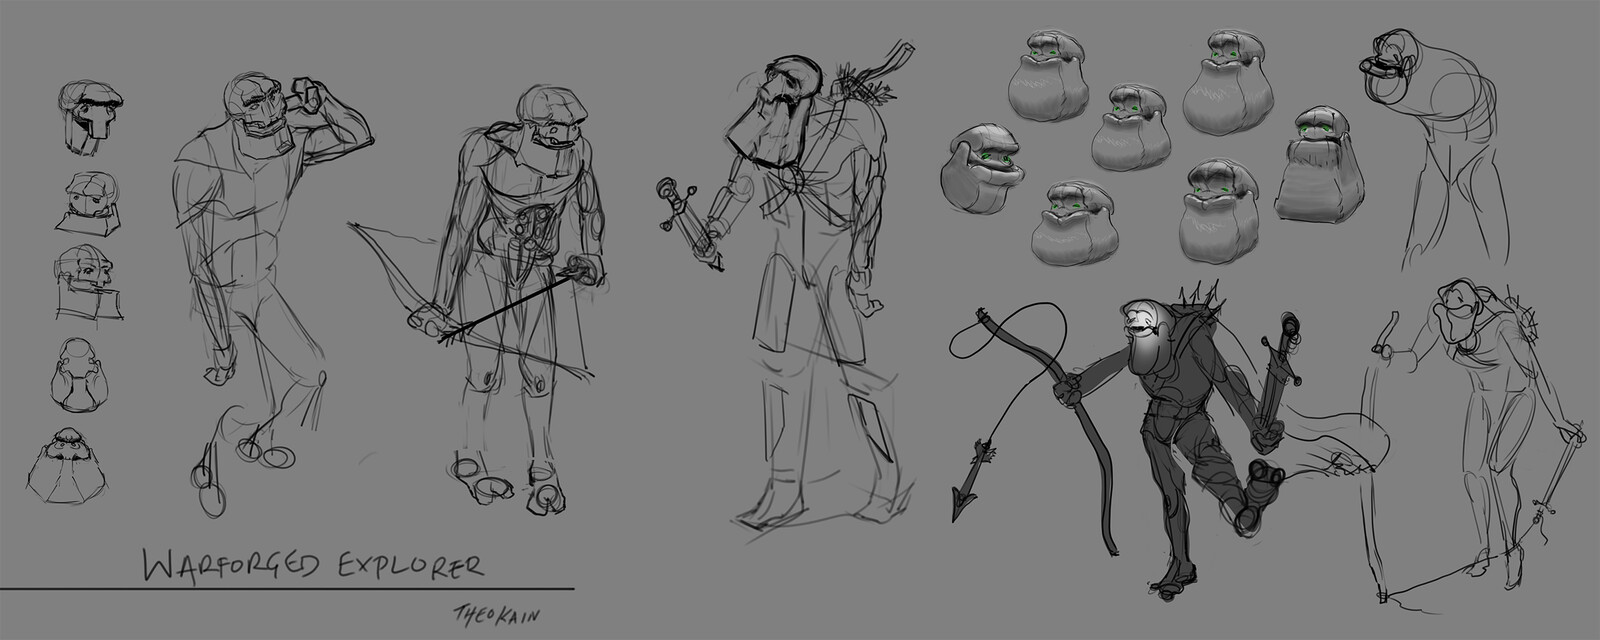 Character explorations, trying hard to maintain dignity of character